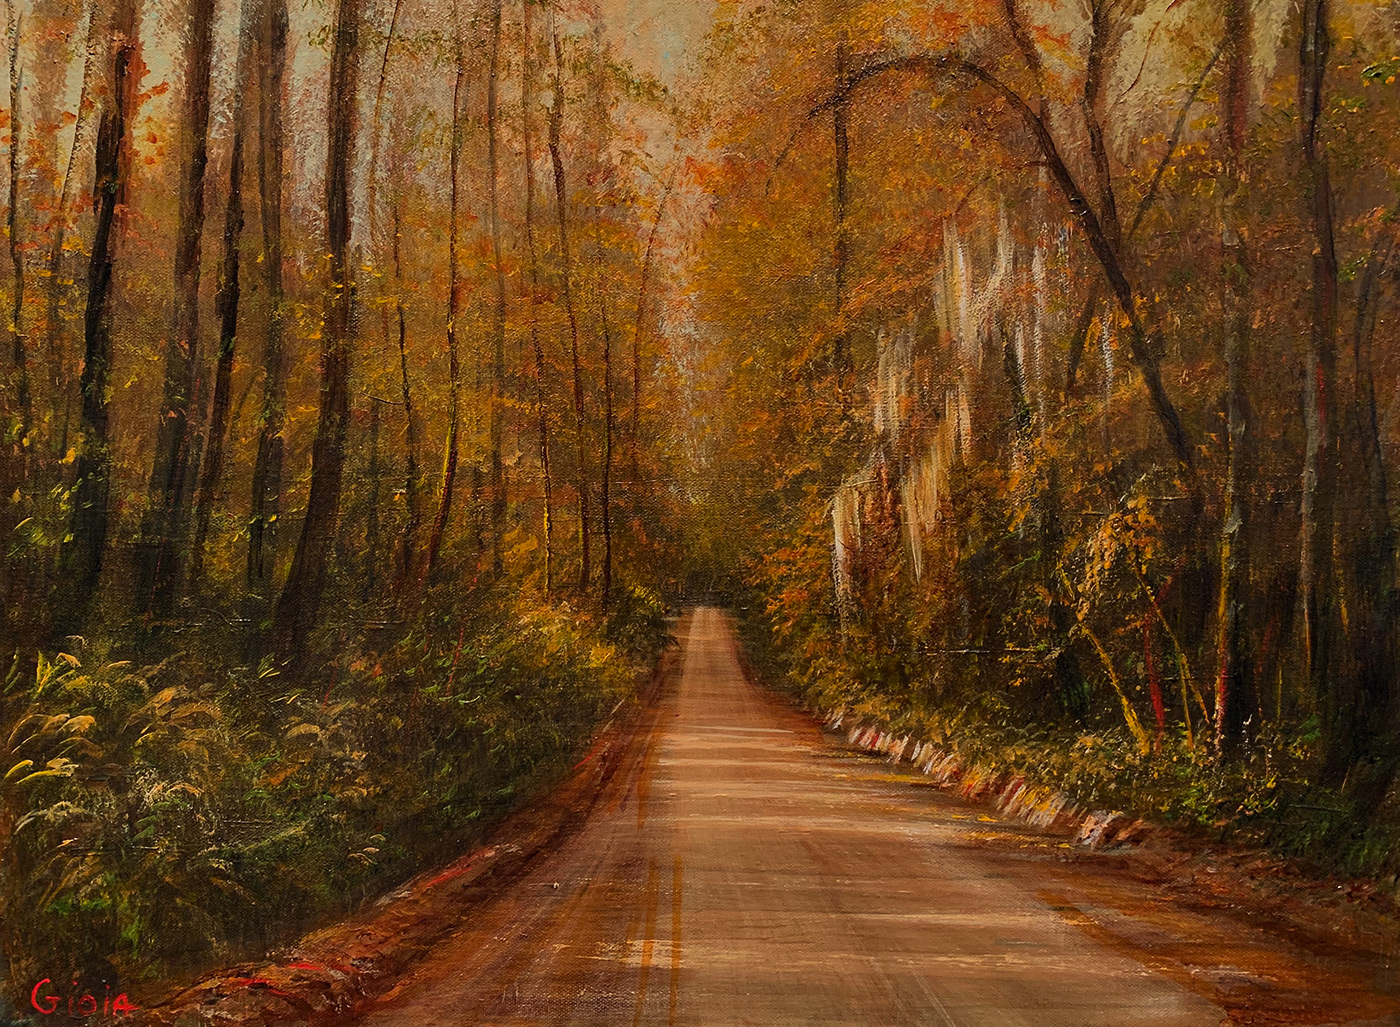 Clay Road In Autumn